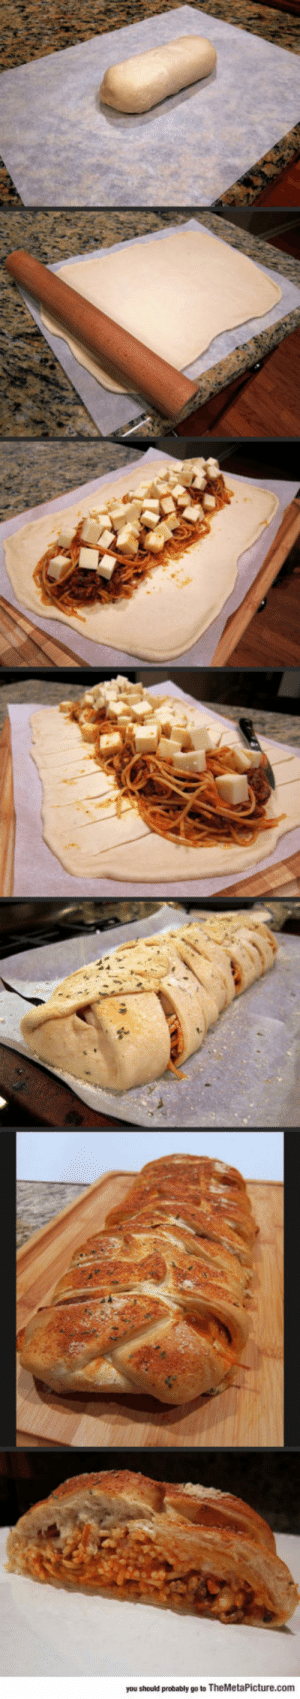 lolzandtrollz:  For Those Who Are Too Lazy To Dip Bread In Spaghetti: you should probably go to TheMetaPicture.com lolzandtrollz:  For Those Who Are Too Lazy To Dip Bread In Spaghetti